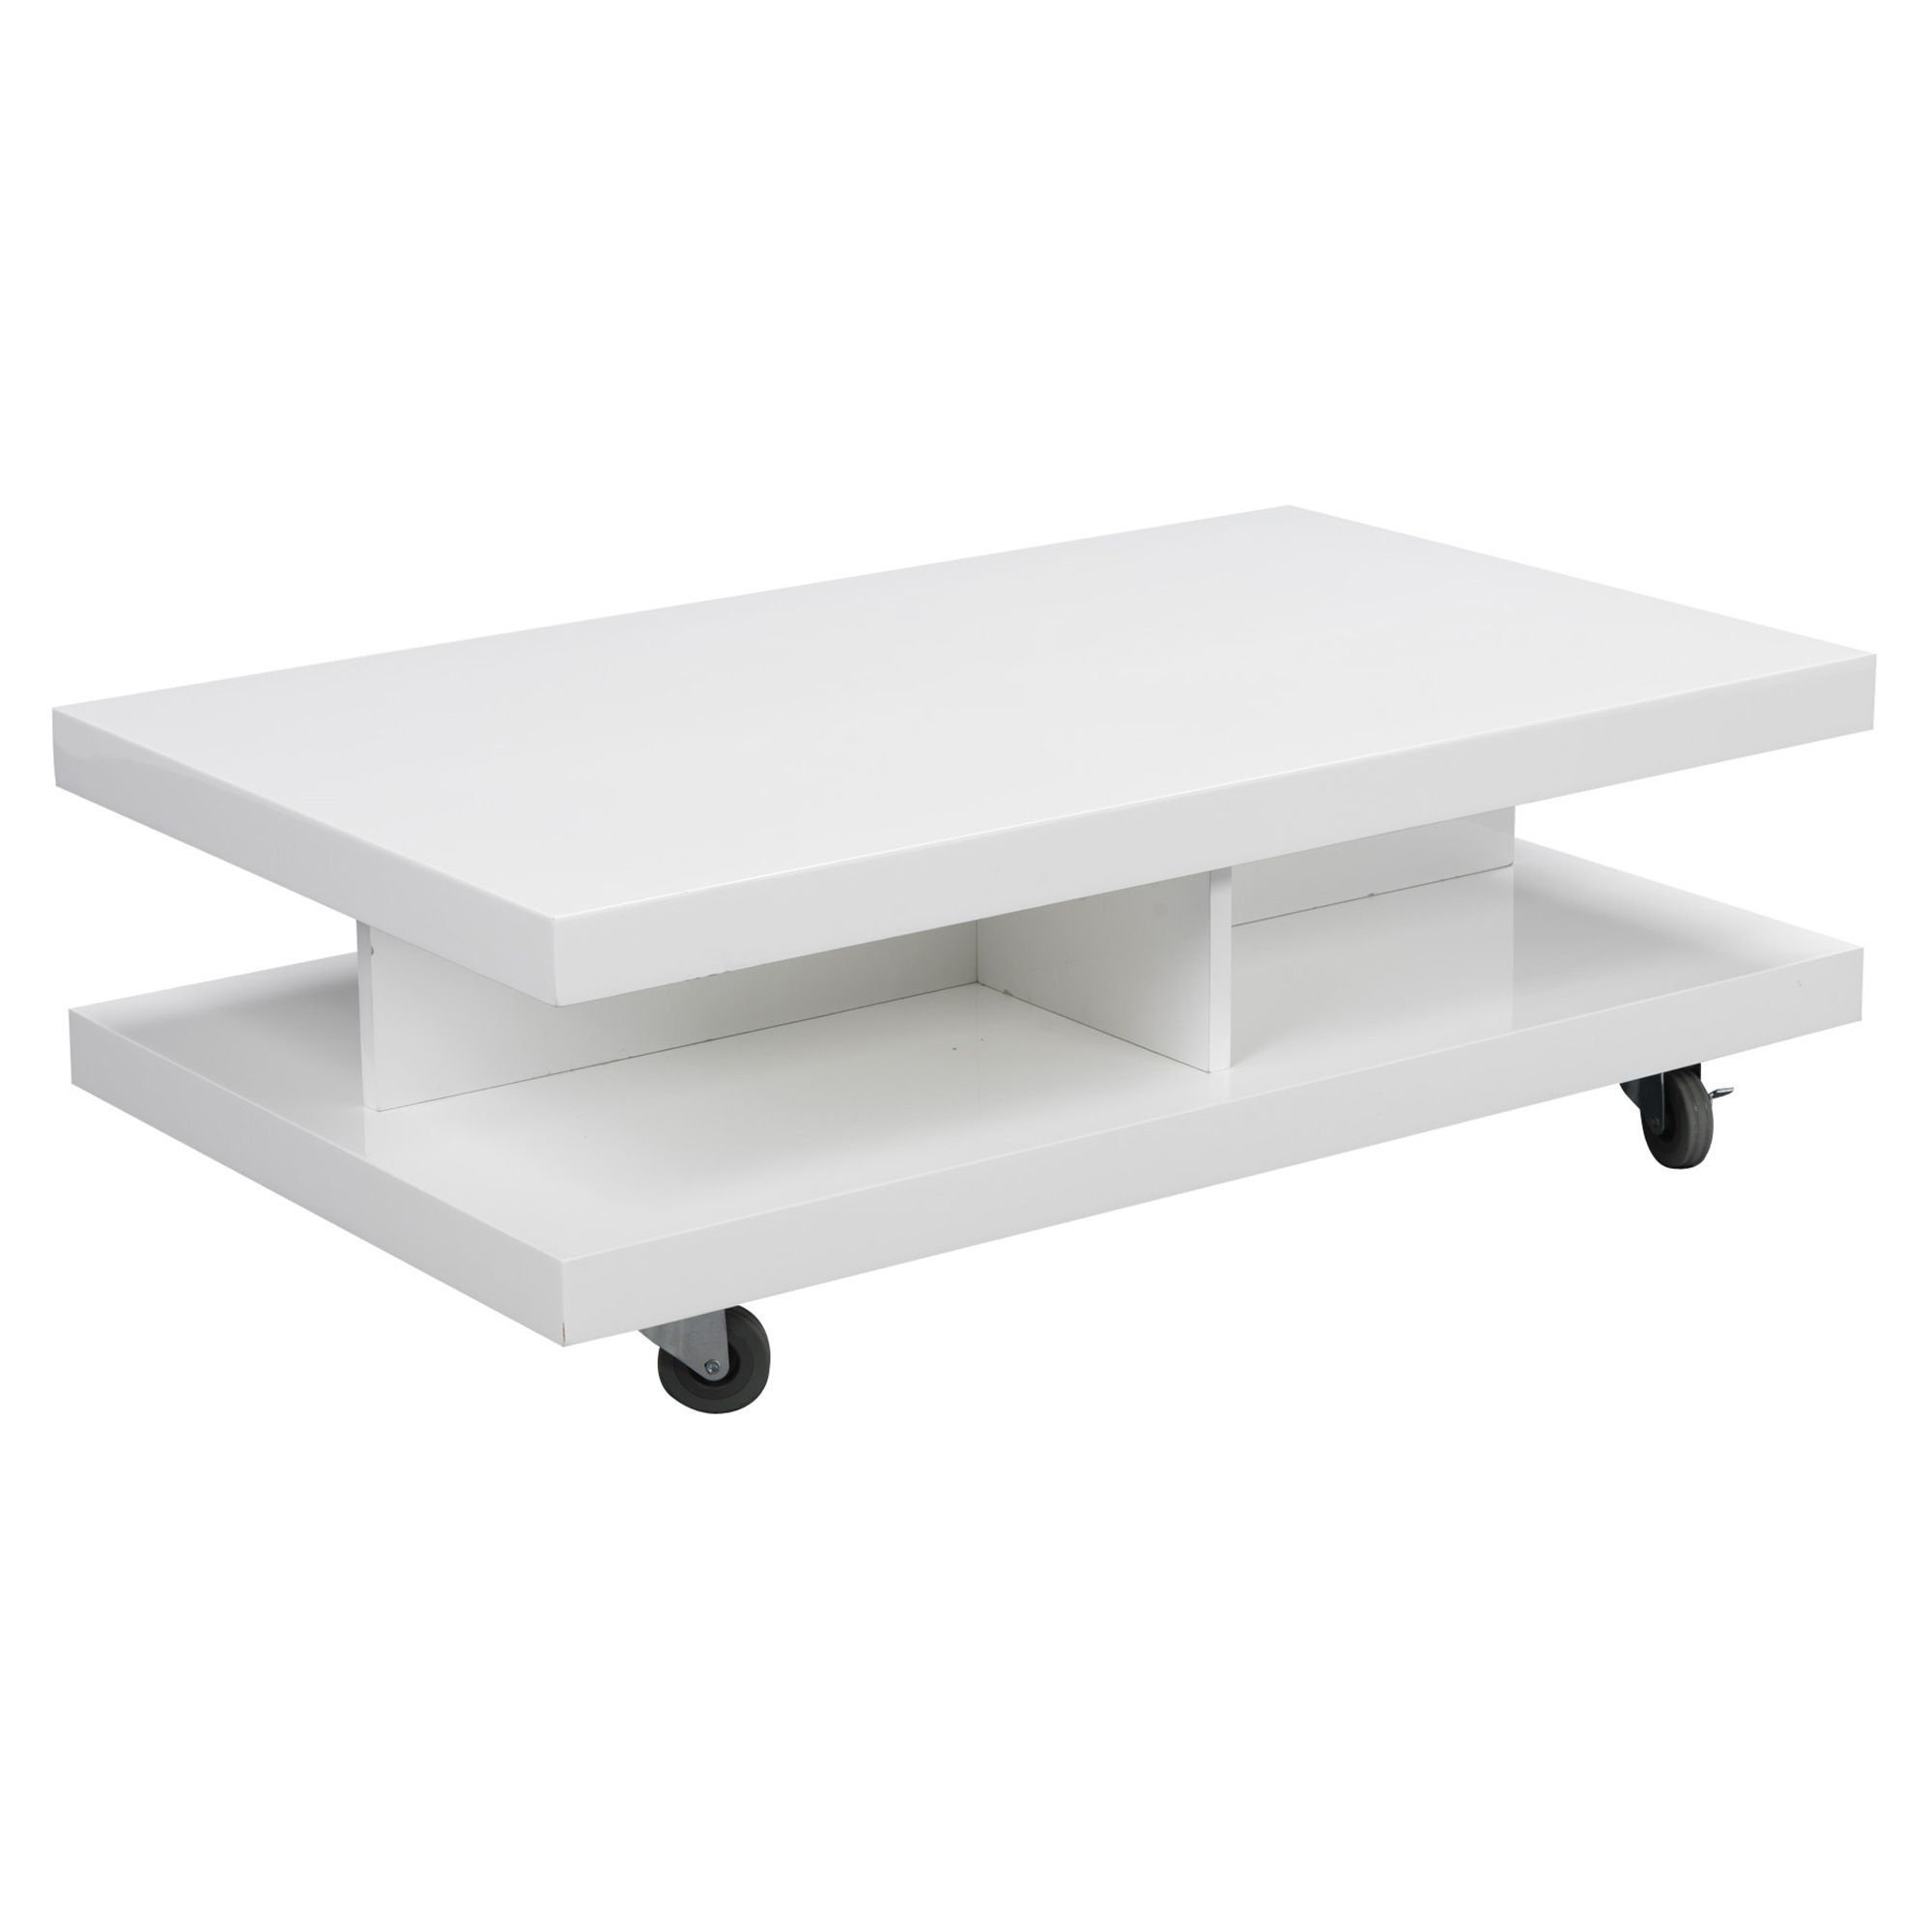 table basse laqu e blanc roller salon les tables basses tables basses et bouts de canap. Black Bedroom Furniture Sets. Home Design Ideas